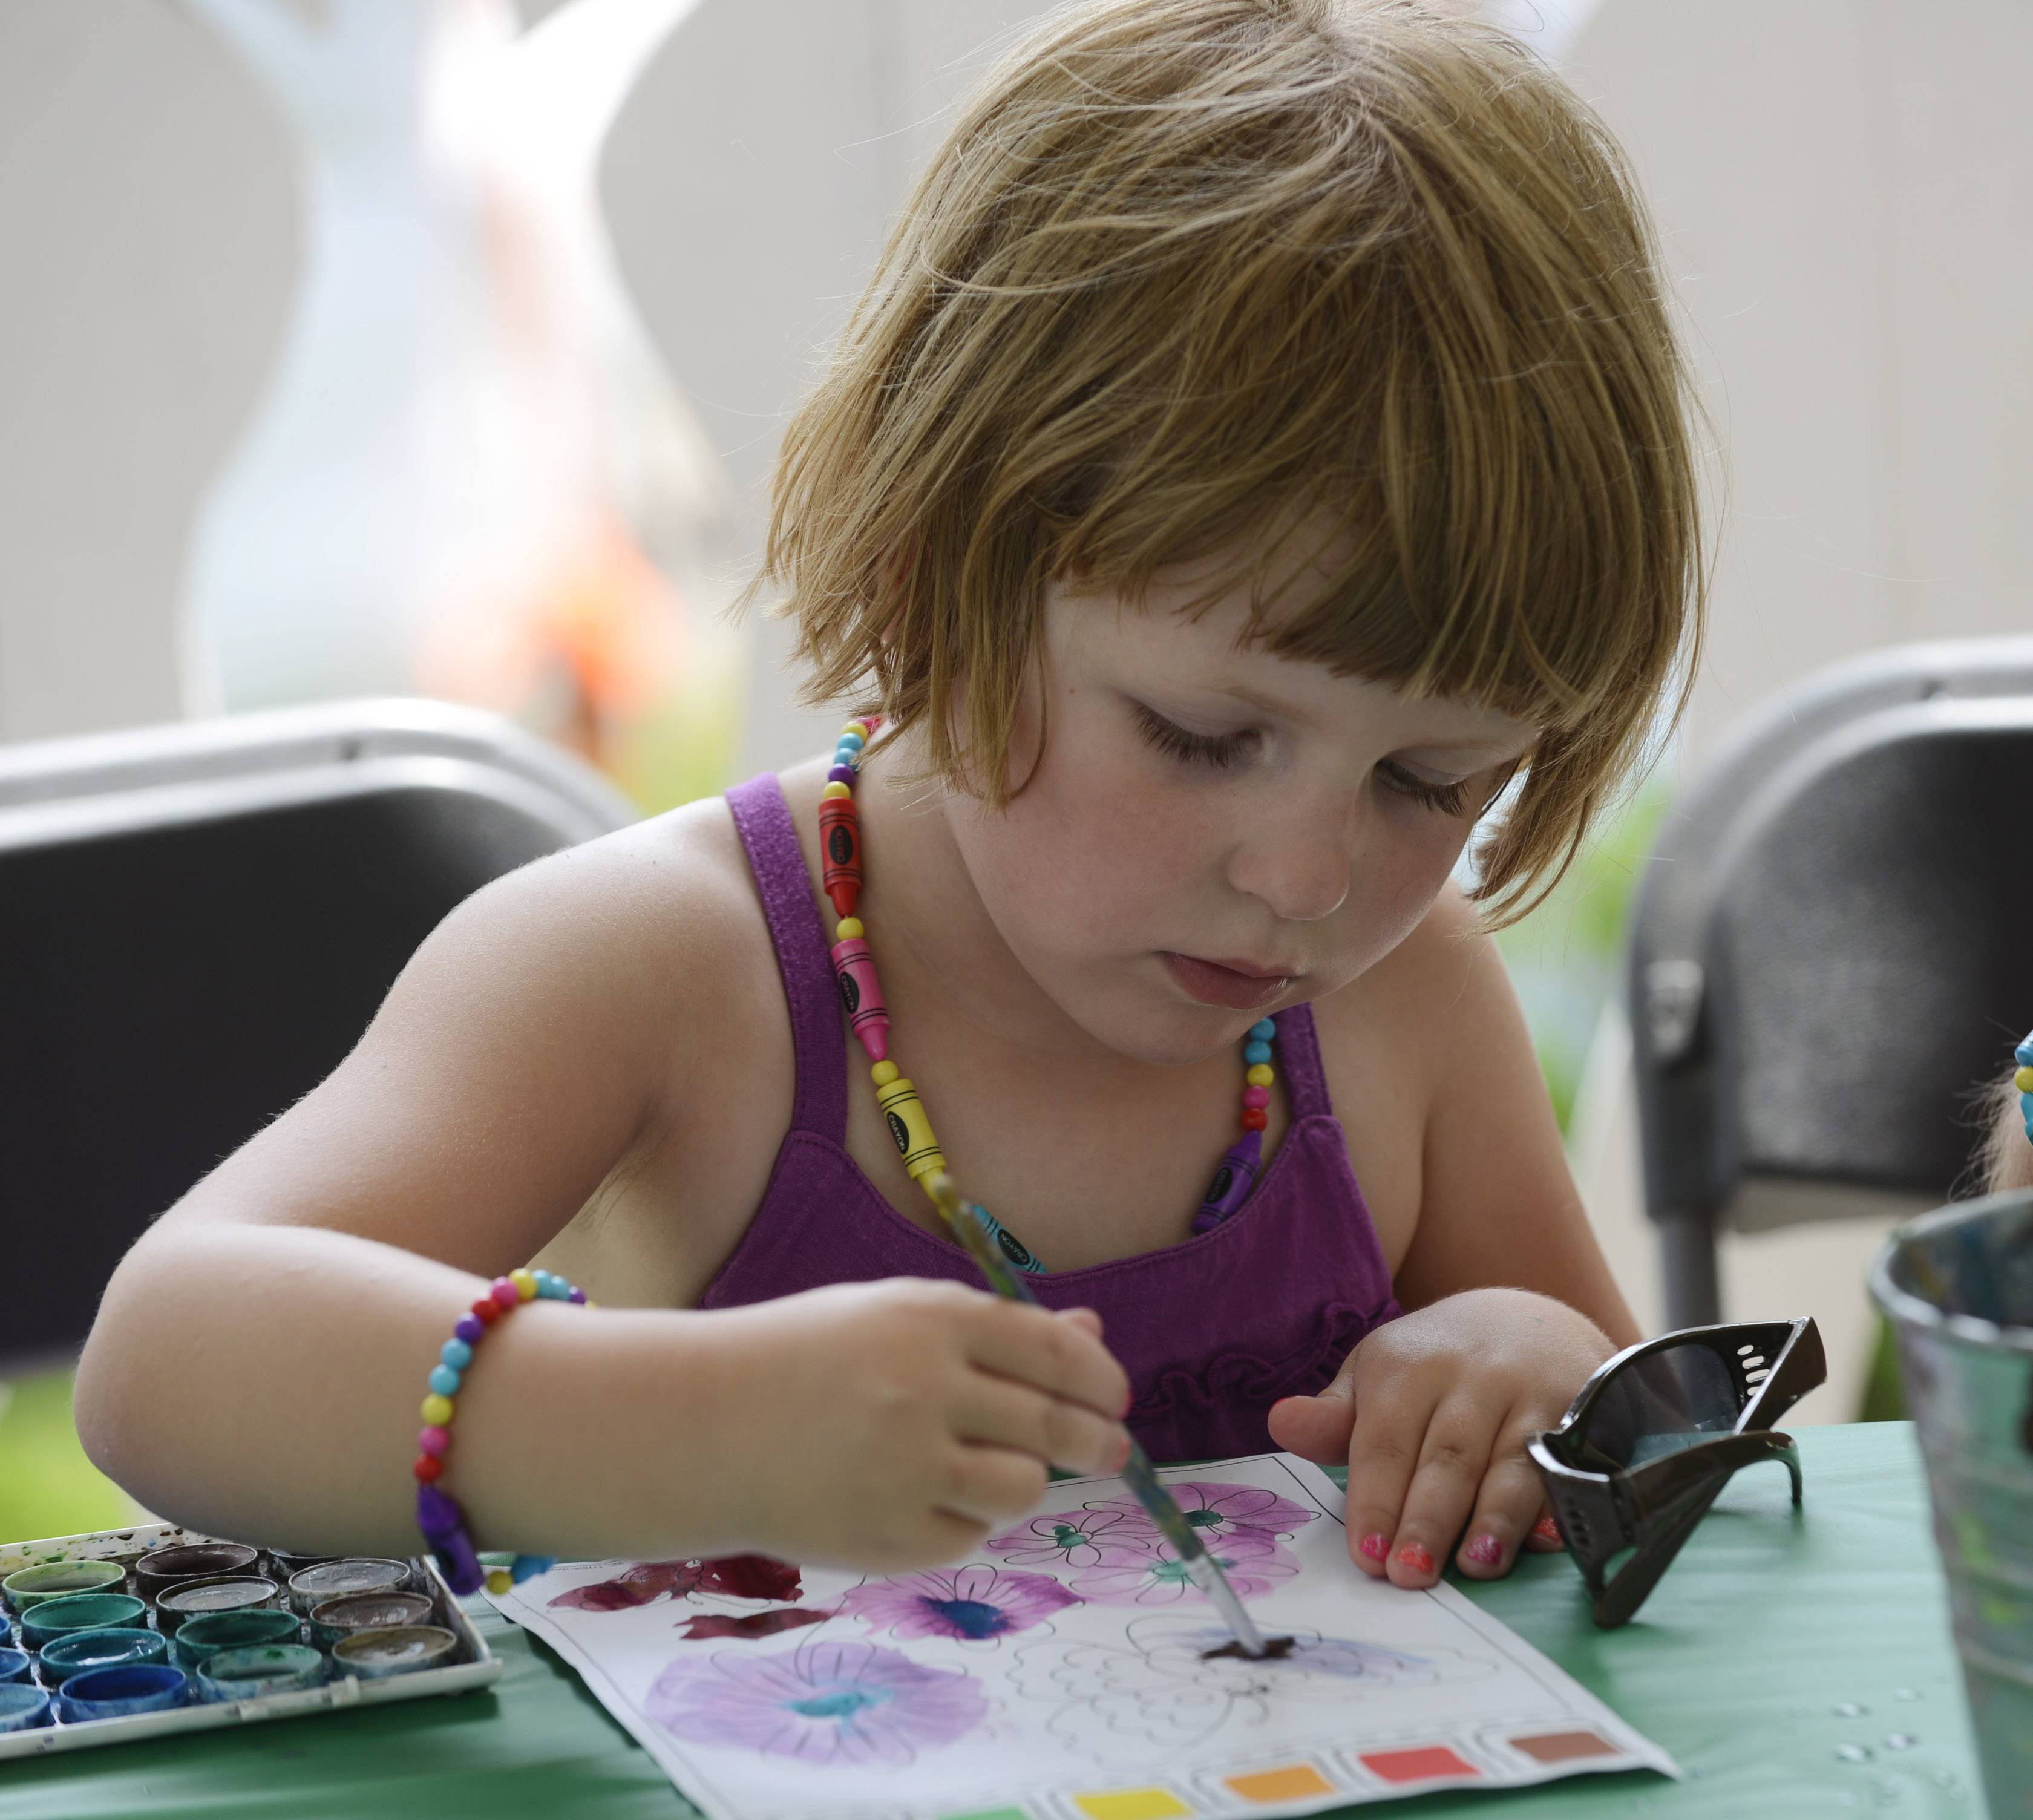 Veronica Baran, 4, of Bartlett paints with watercolors during the Arts in Bartlett Festival of the Arts event at Bartlett Park Saturday.